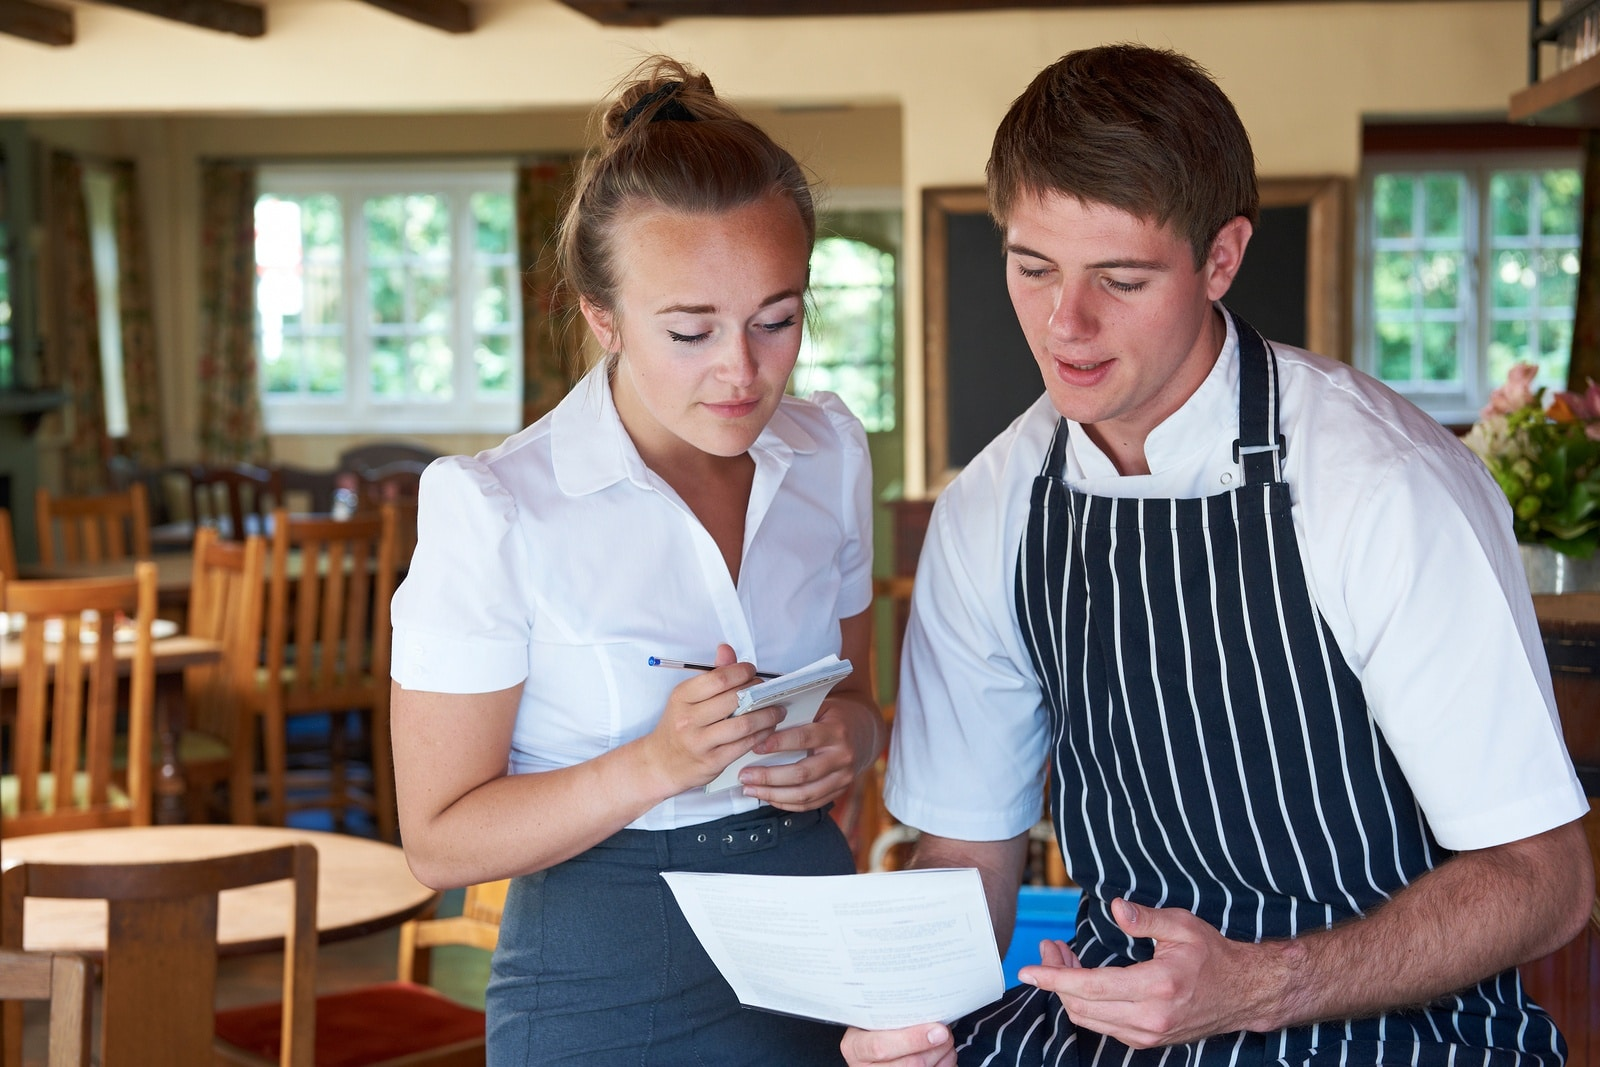 Chef And Waitress Looking Over Their Restaurant Profit Margin